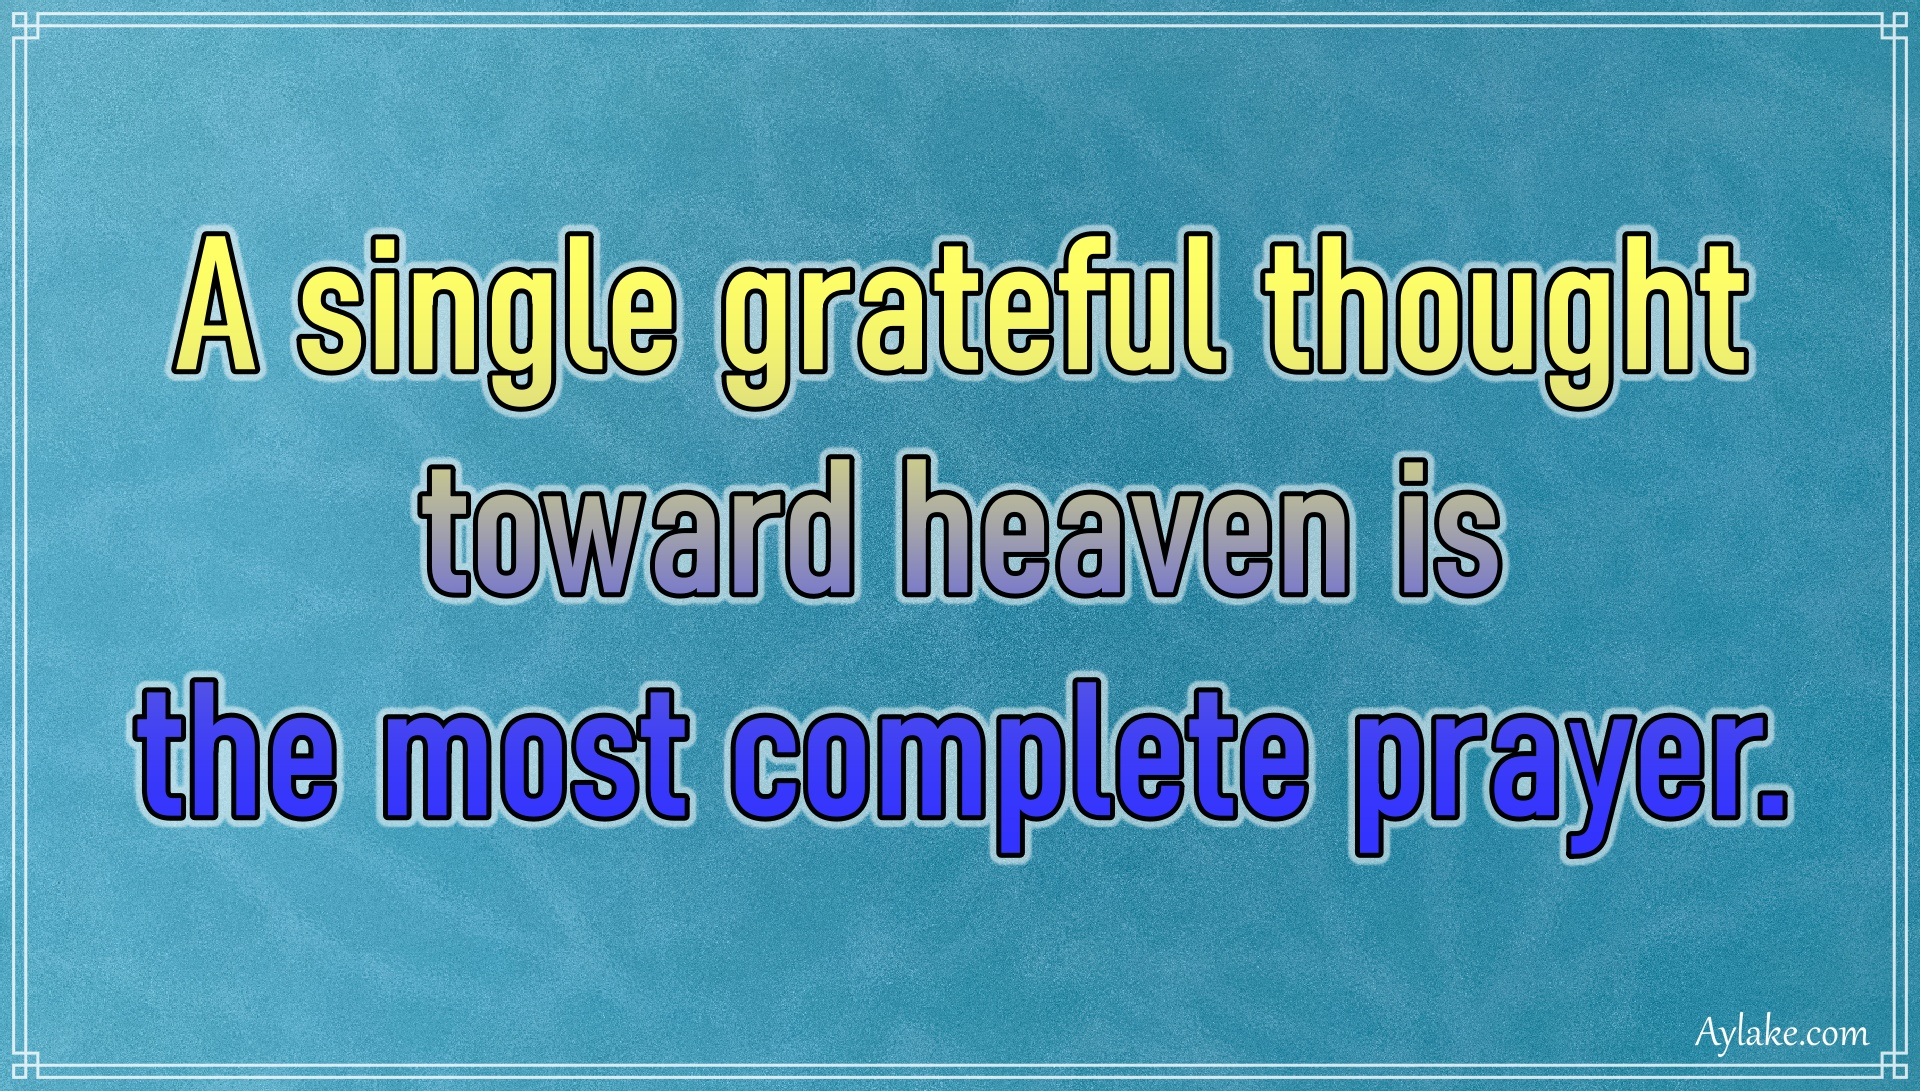 Gratitude quotes A single grateful thought toward heaven is the most complete prayer Aylake